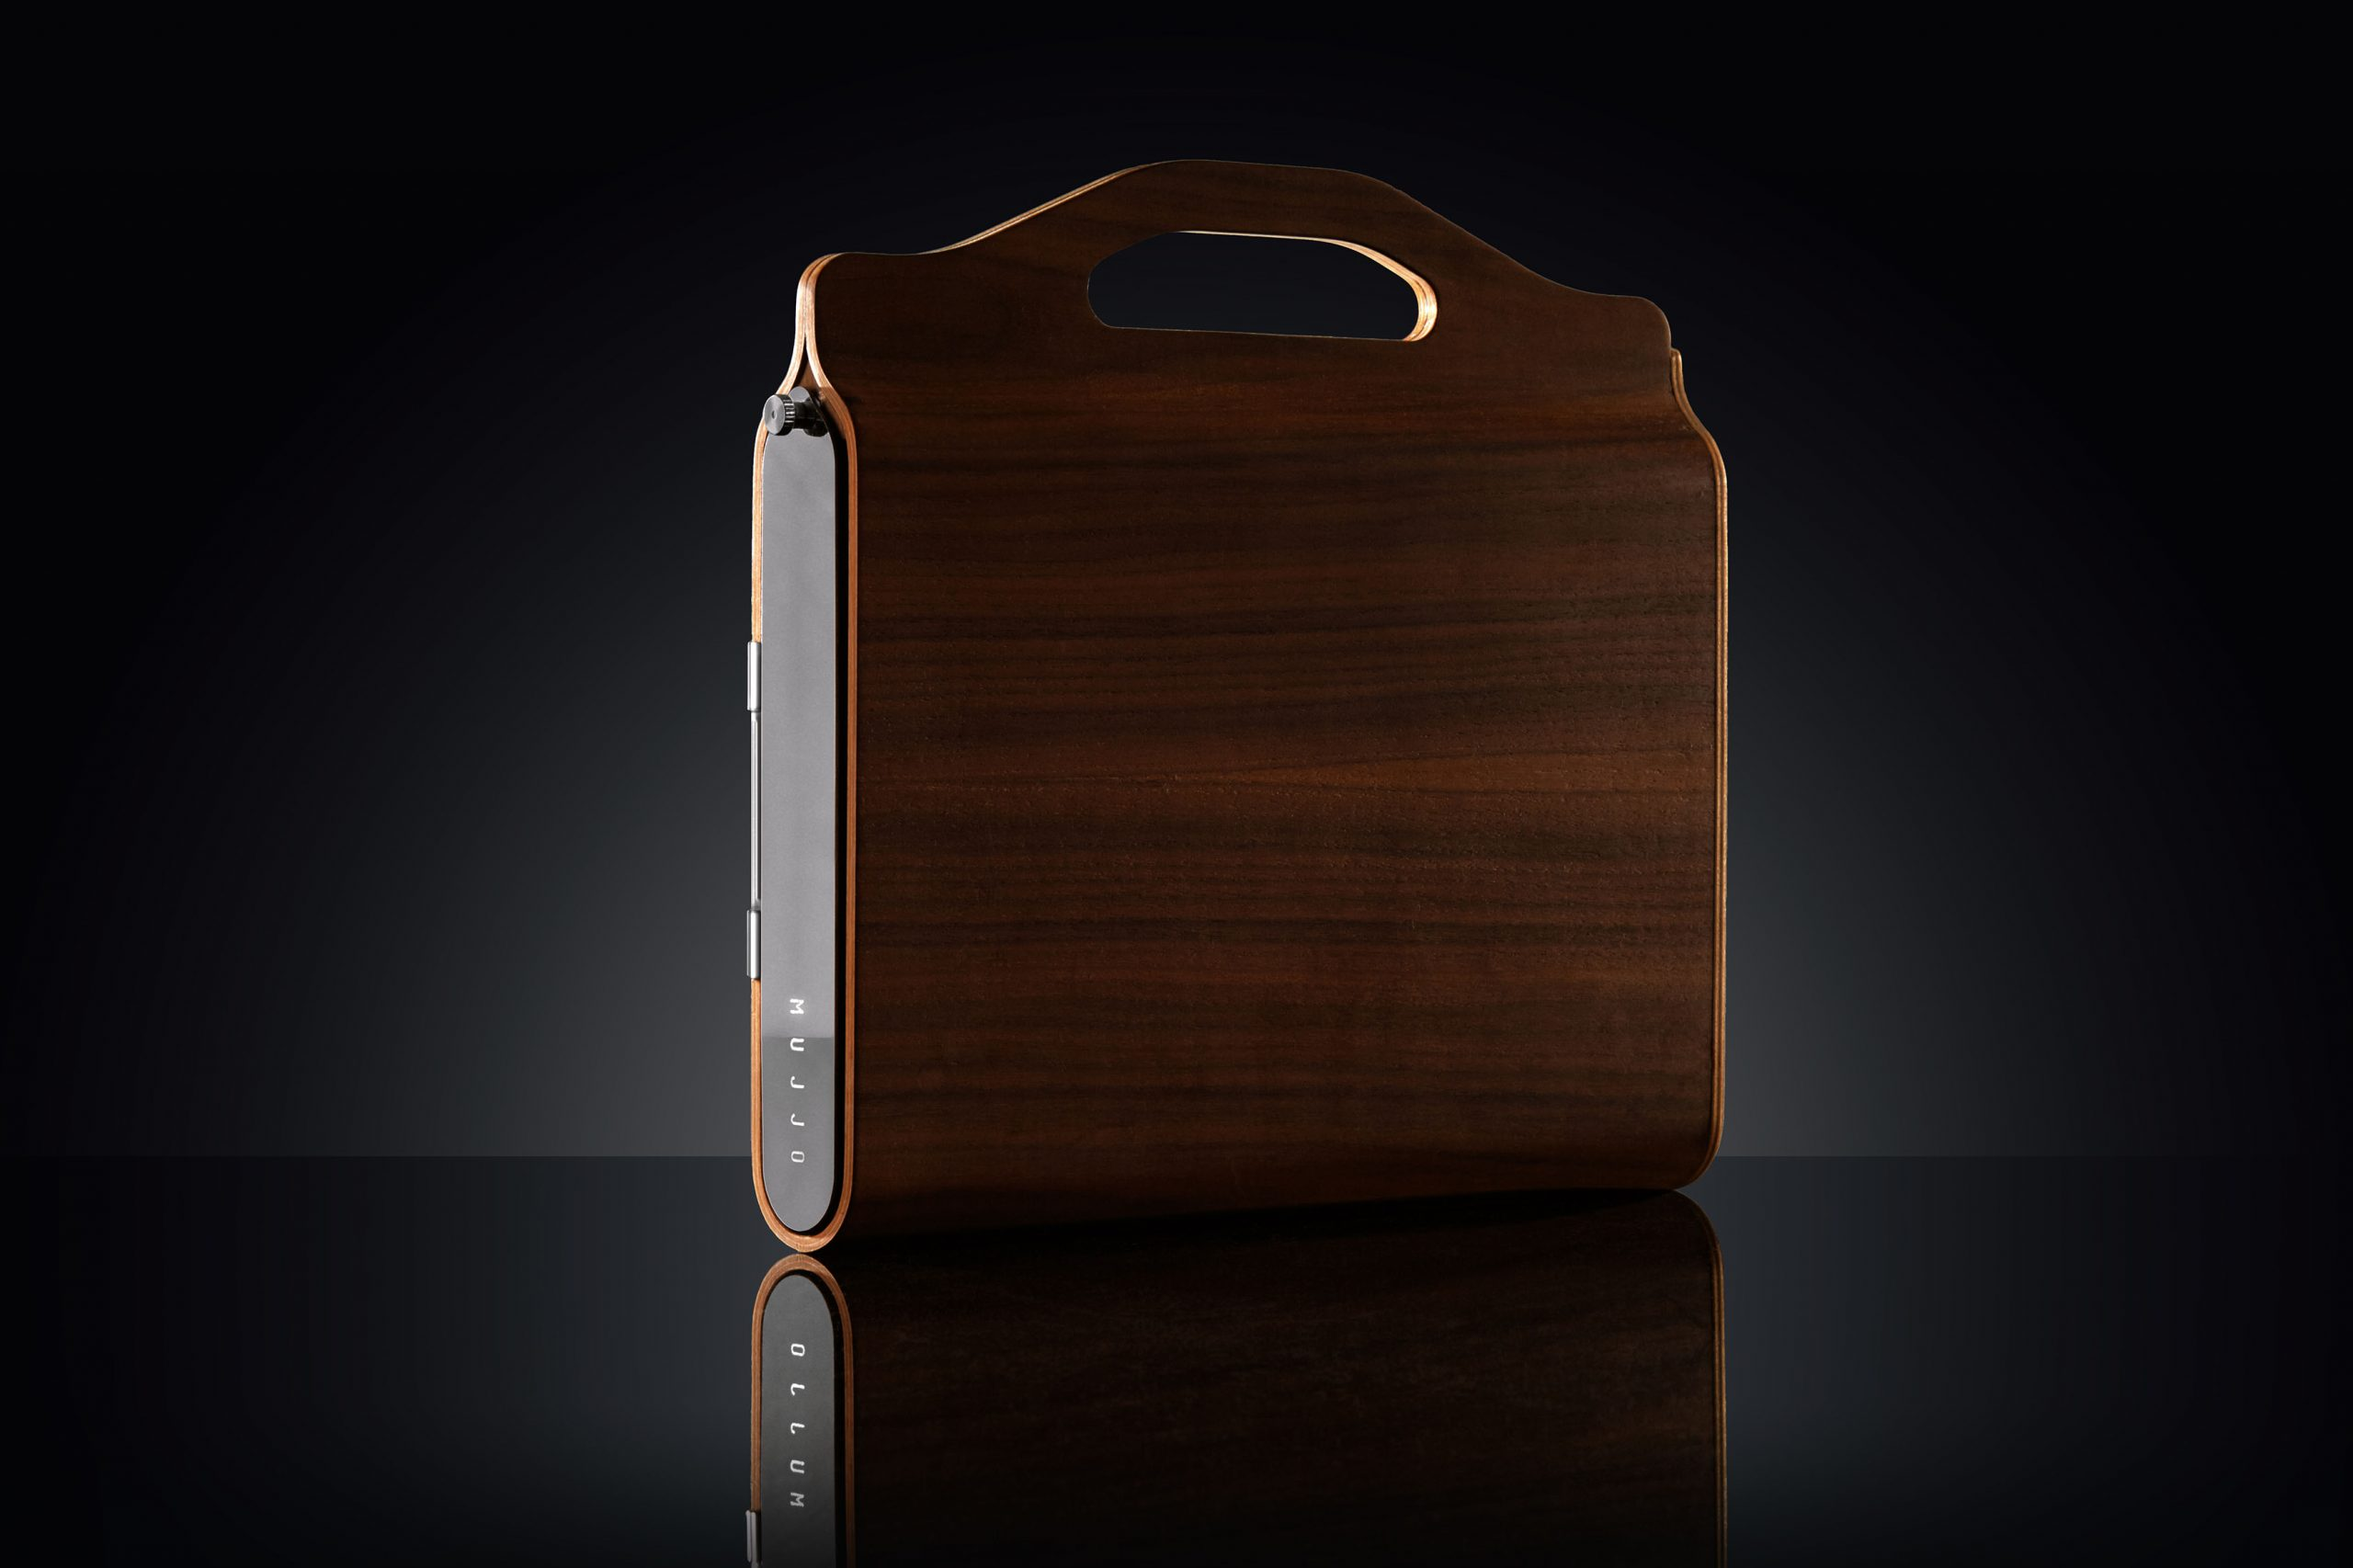 Wooden case for Macbook - 001-HERO_ZONE